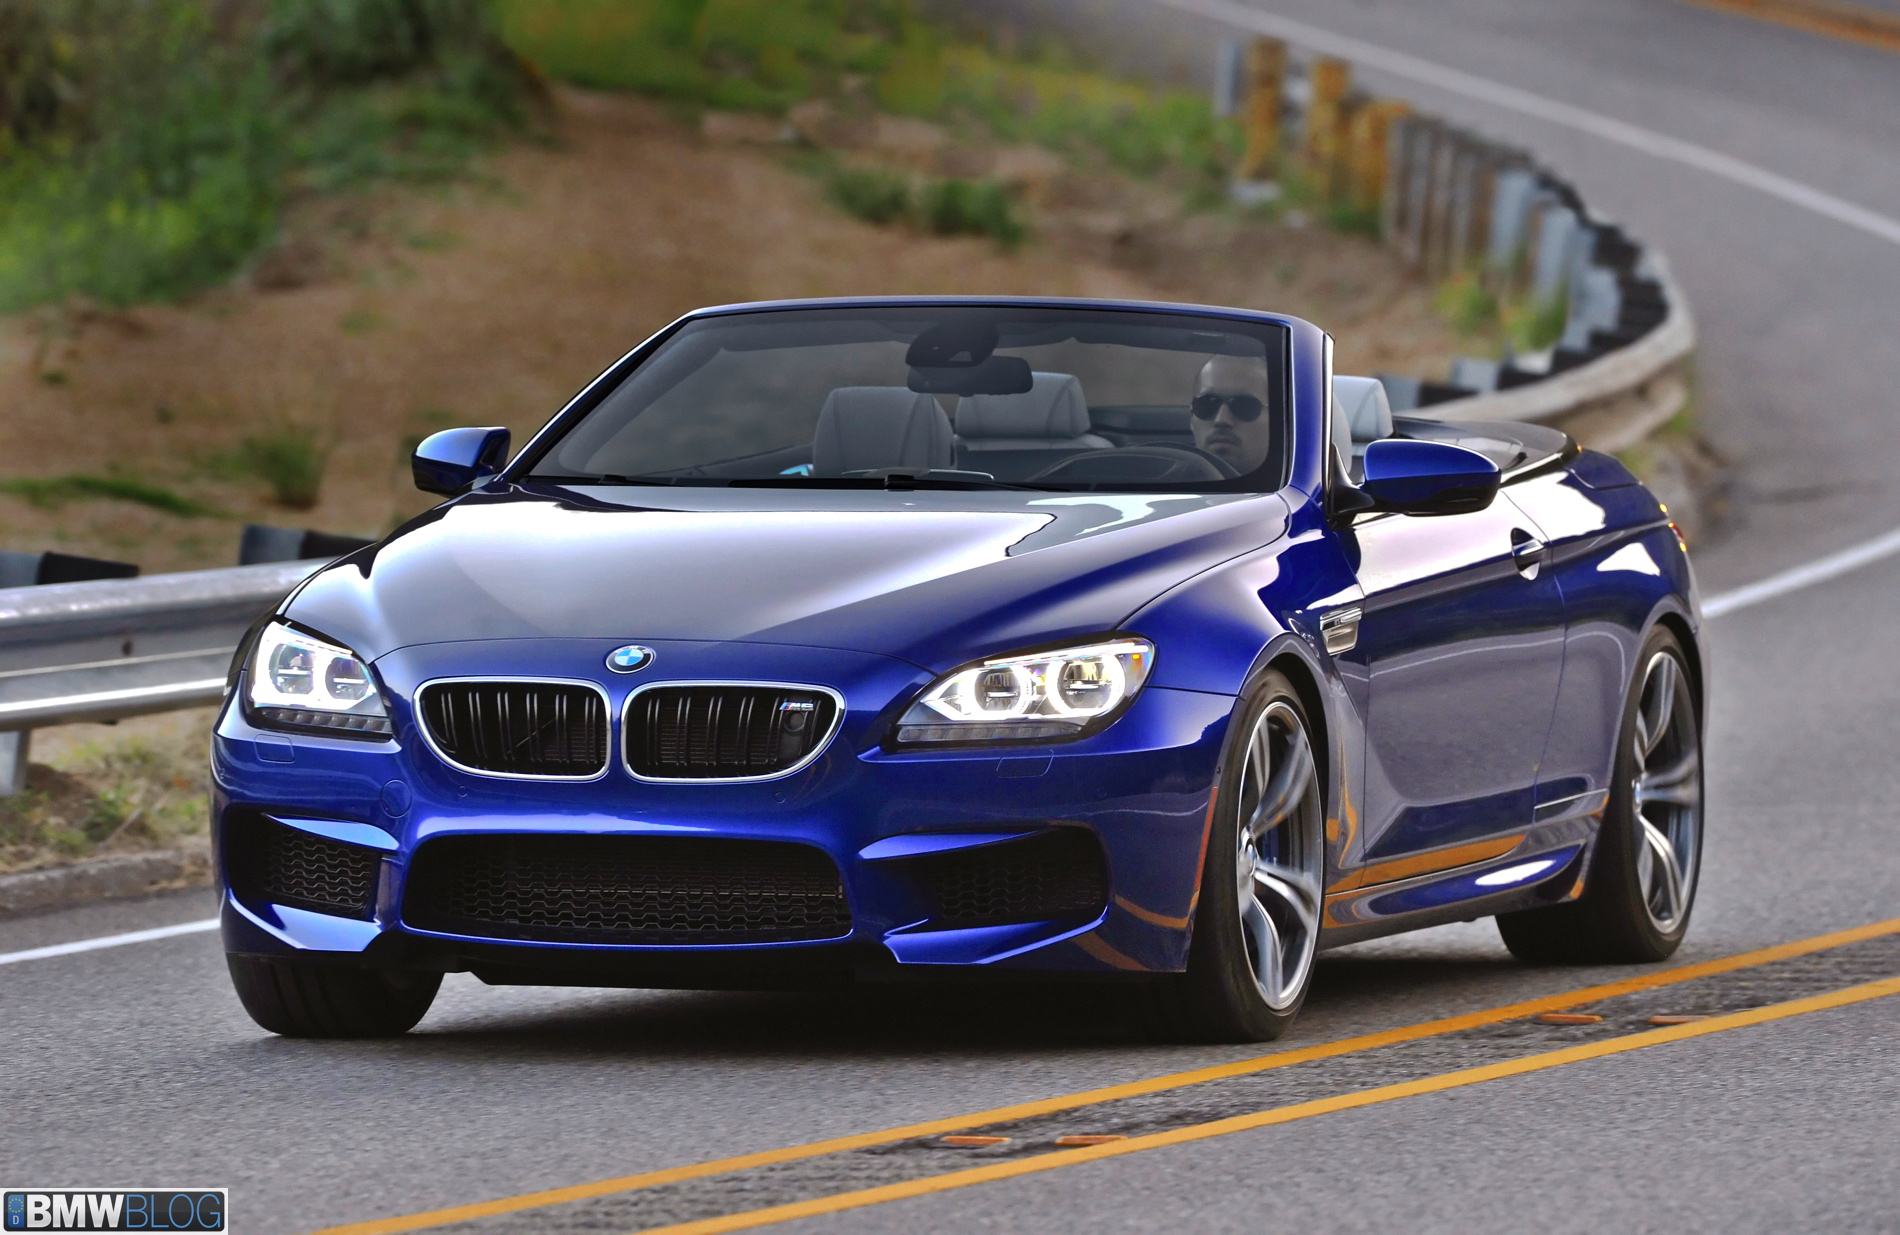 bmw m6 cabrio technical details history photos on better. Black Bedroom Furniture Sets. Home Design Ideas